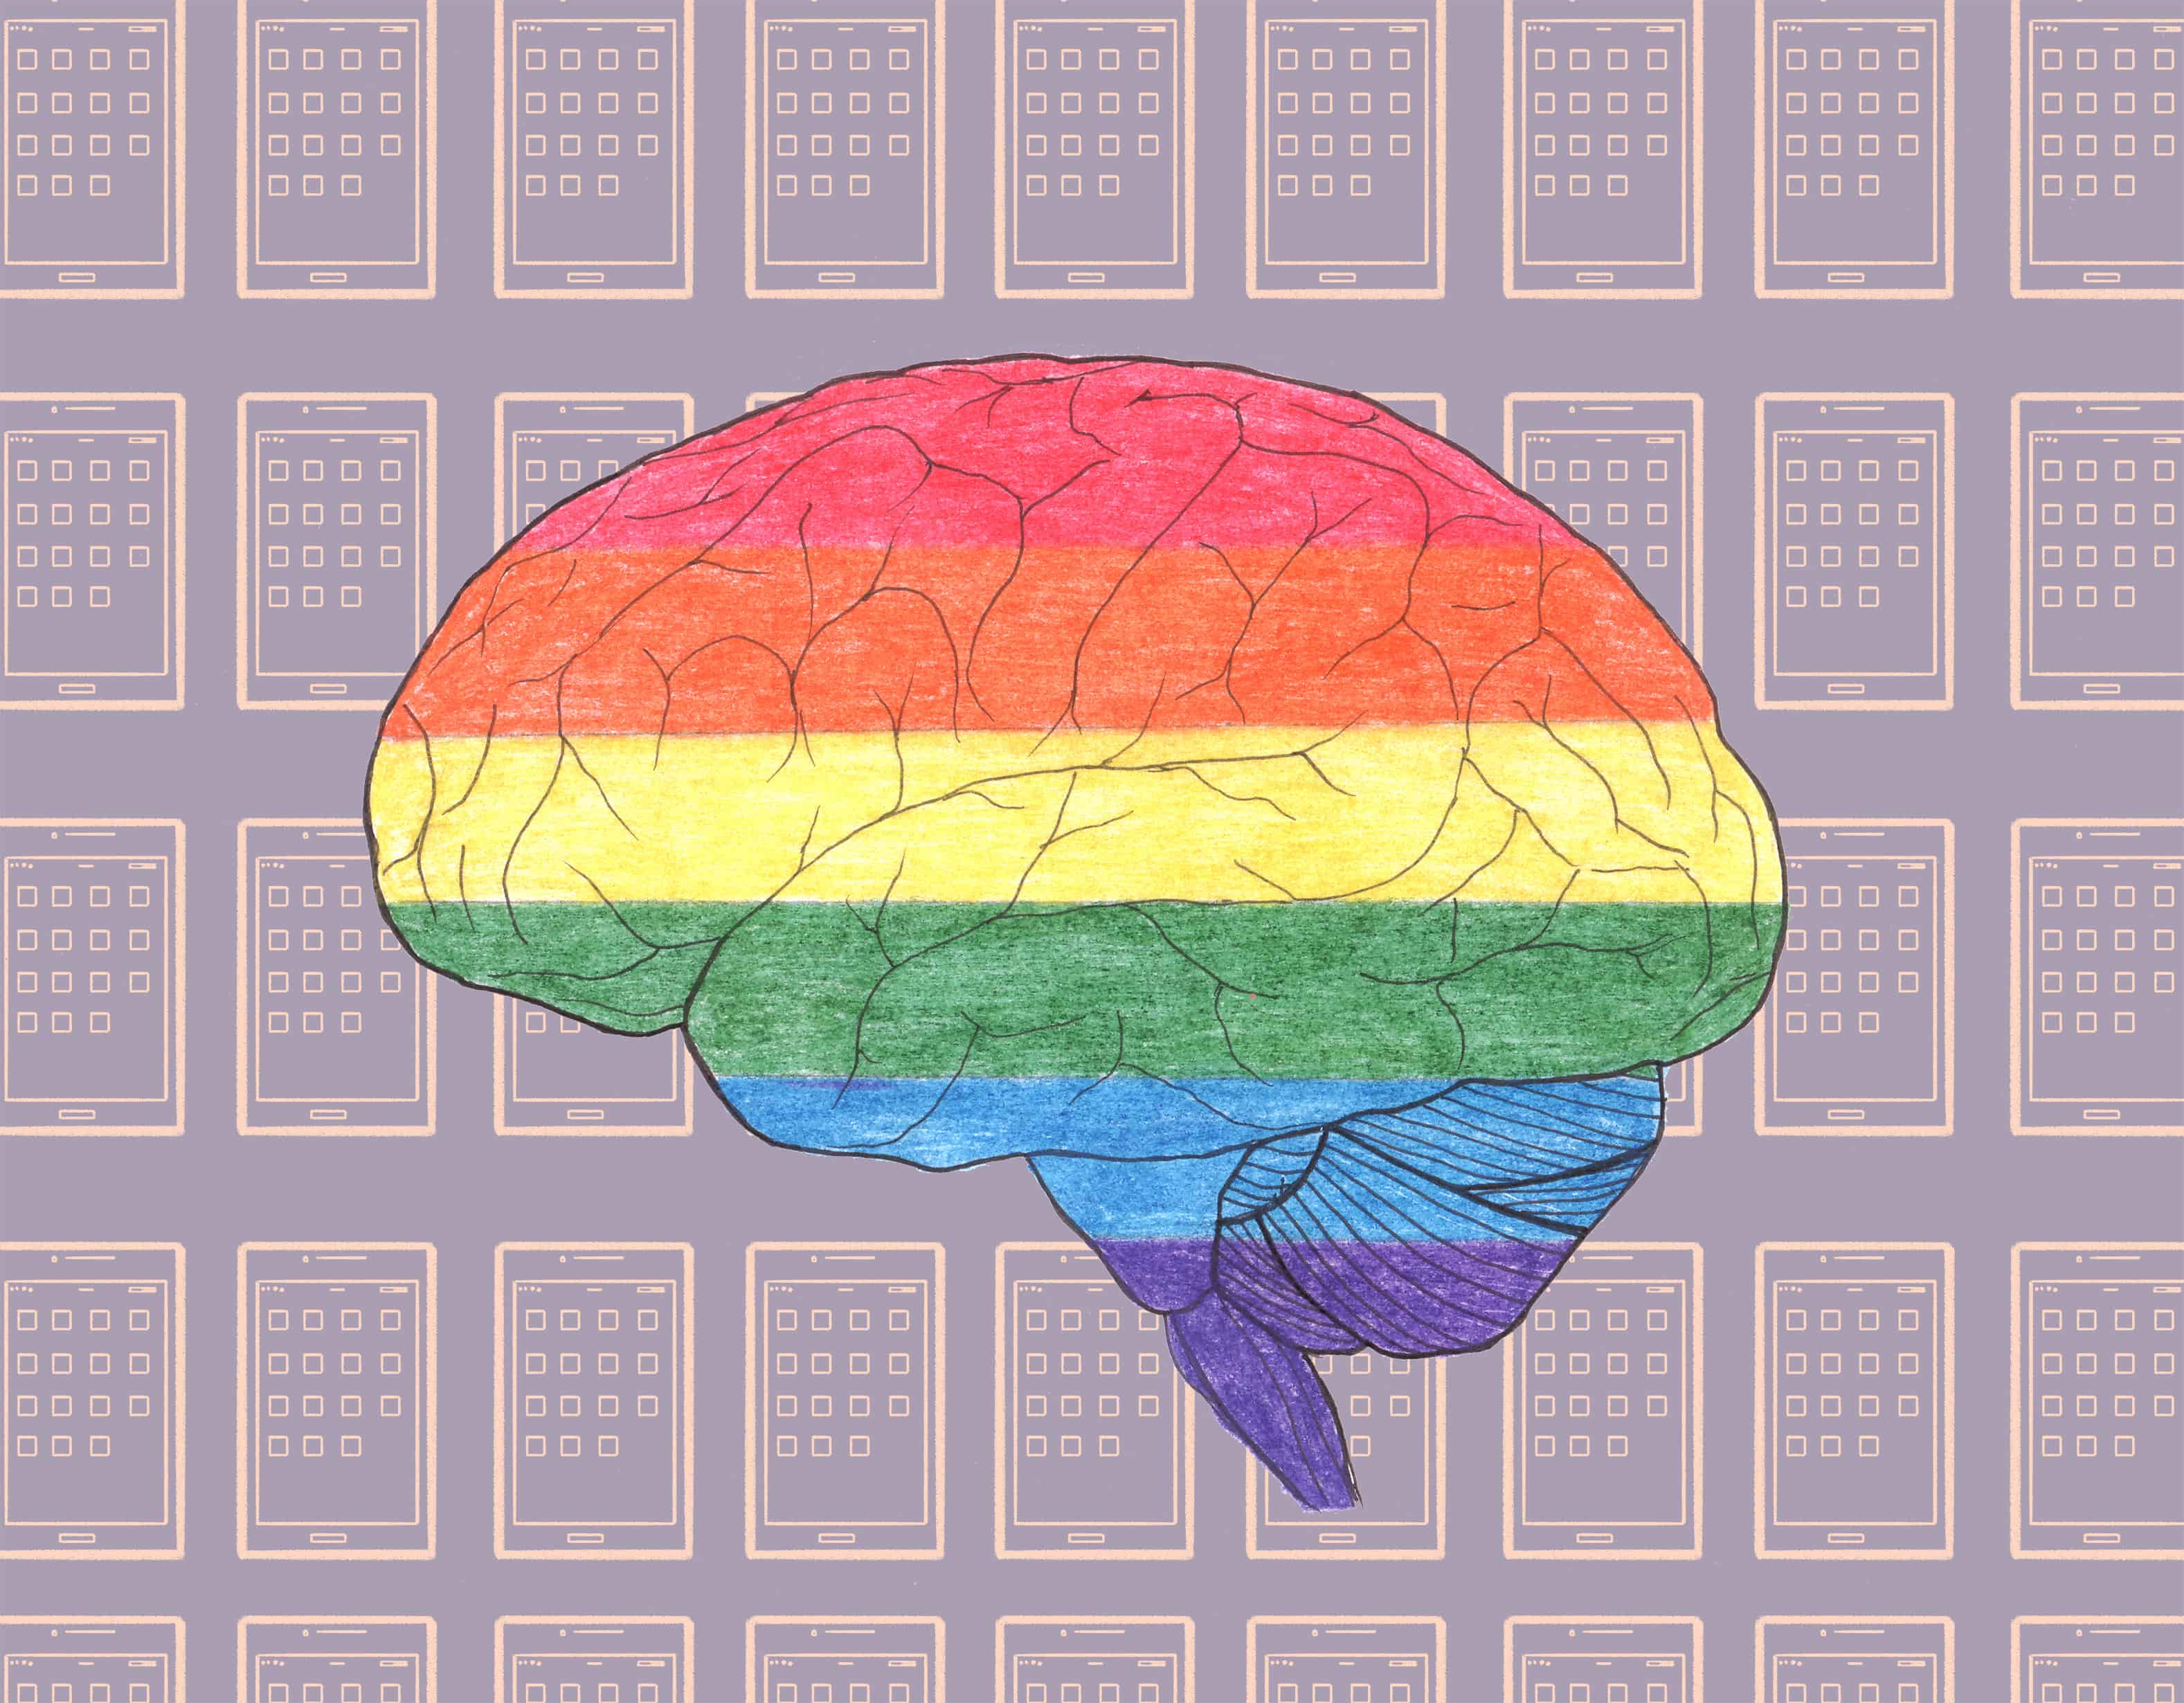 Comment_mental-health-in-the-queer-commmunity_Zahra-Danaei-and-Elham-Numan